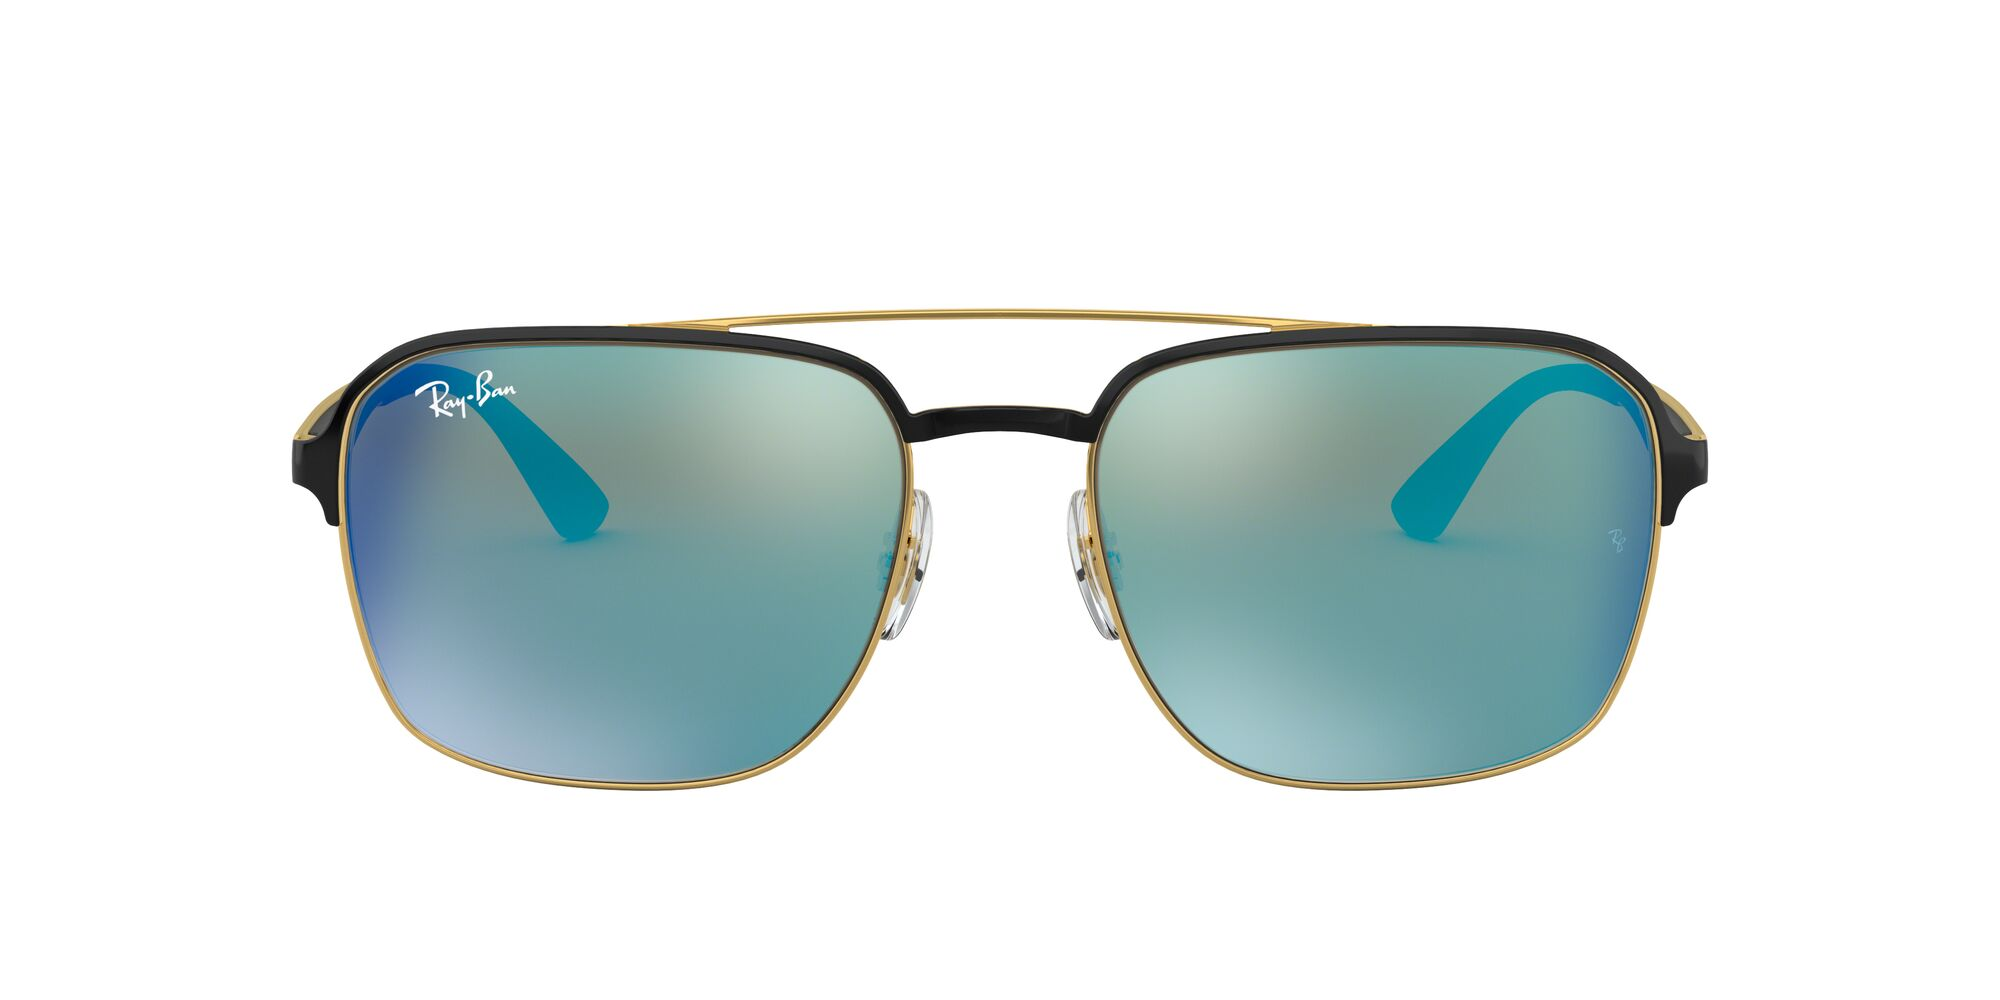 Front Ray-Ban Ray-Ban 0RB3570 187/55 58/18 Goud/Groen